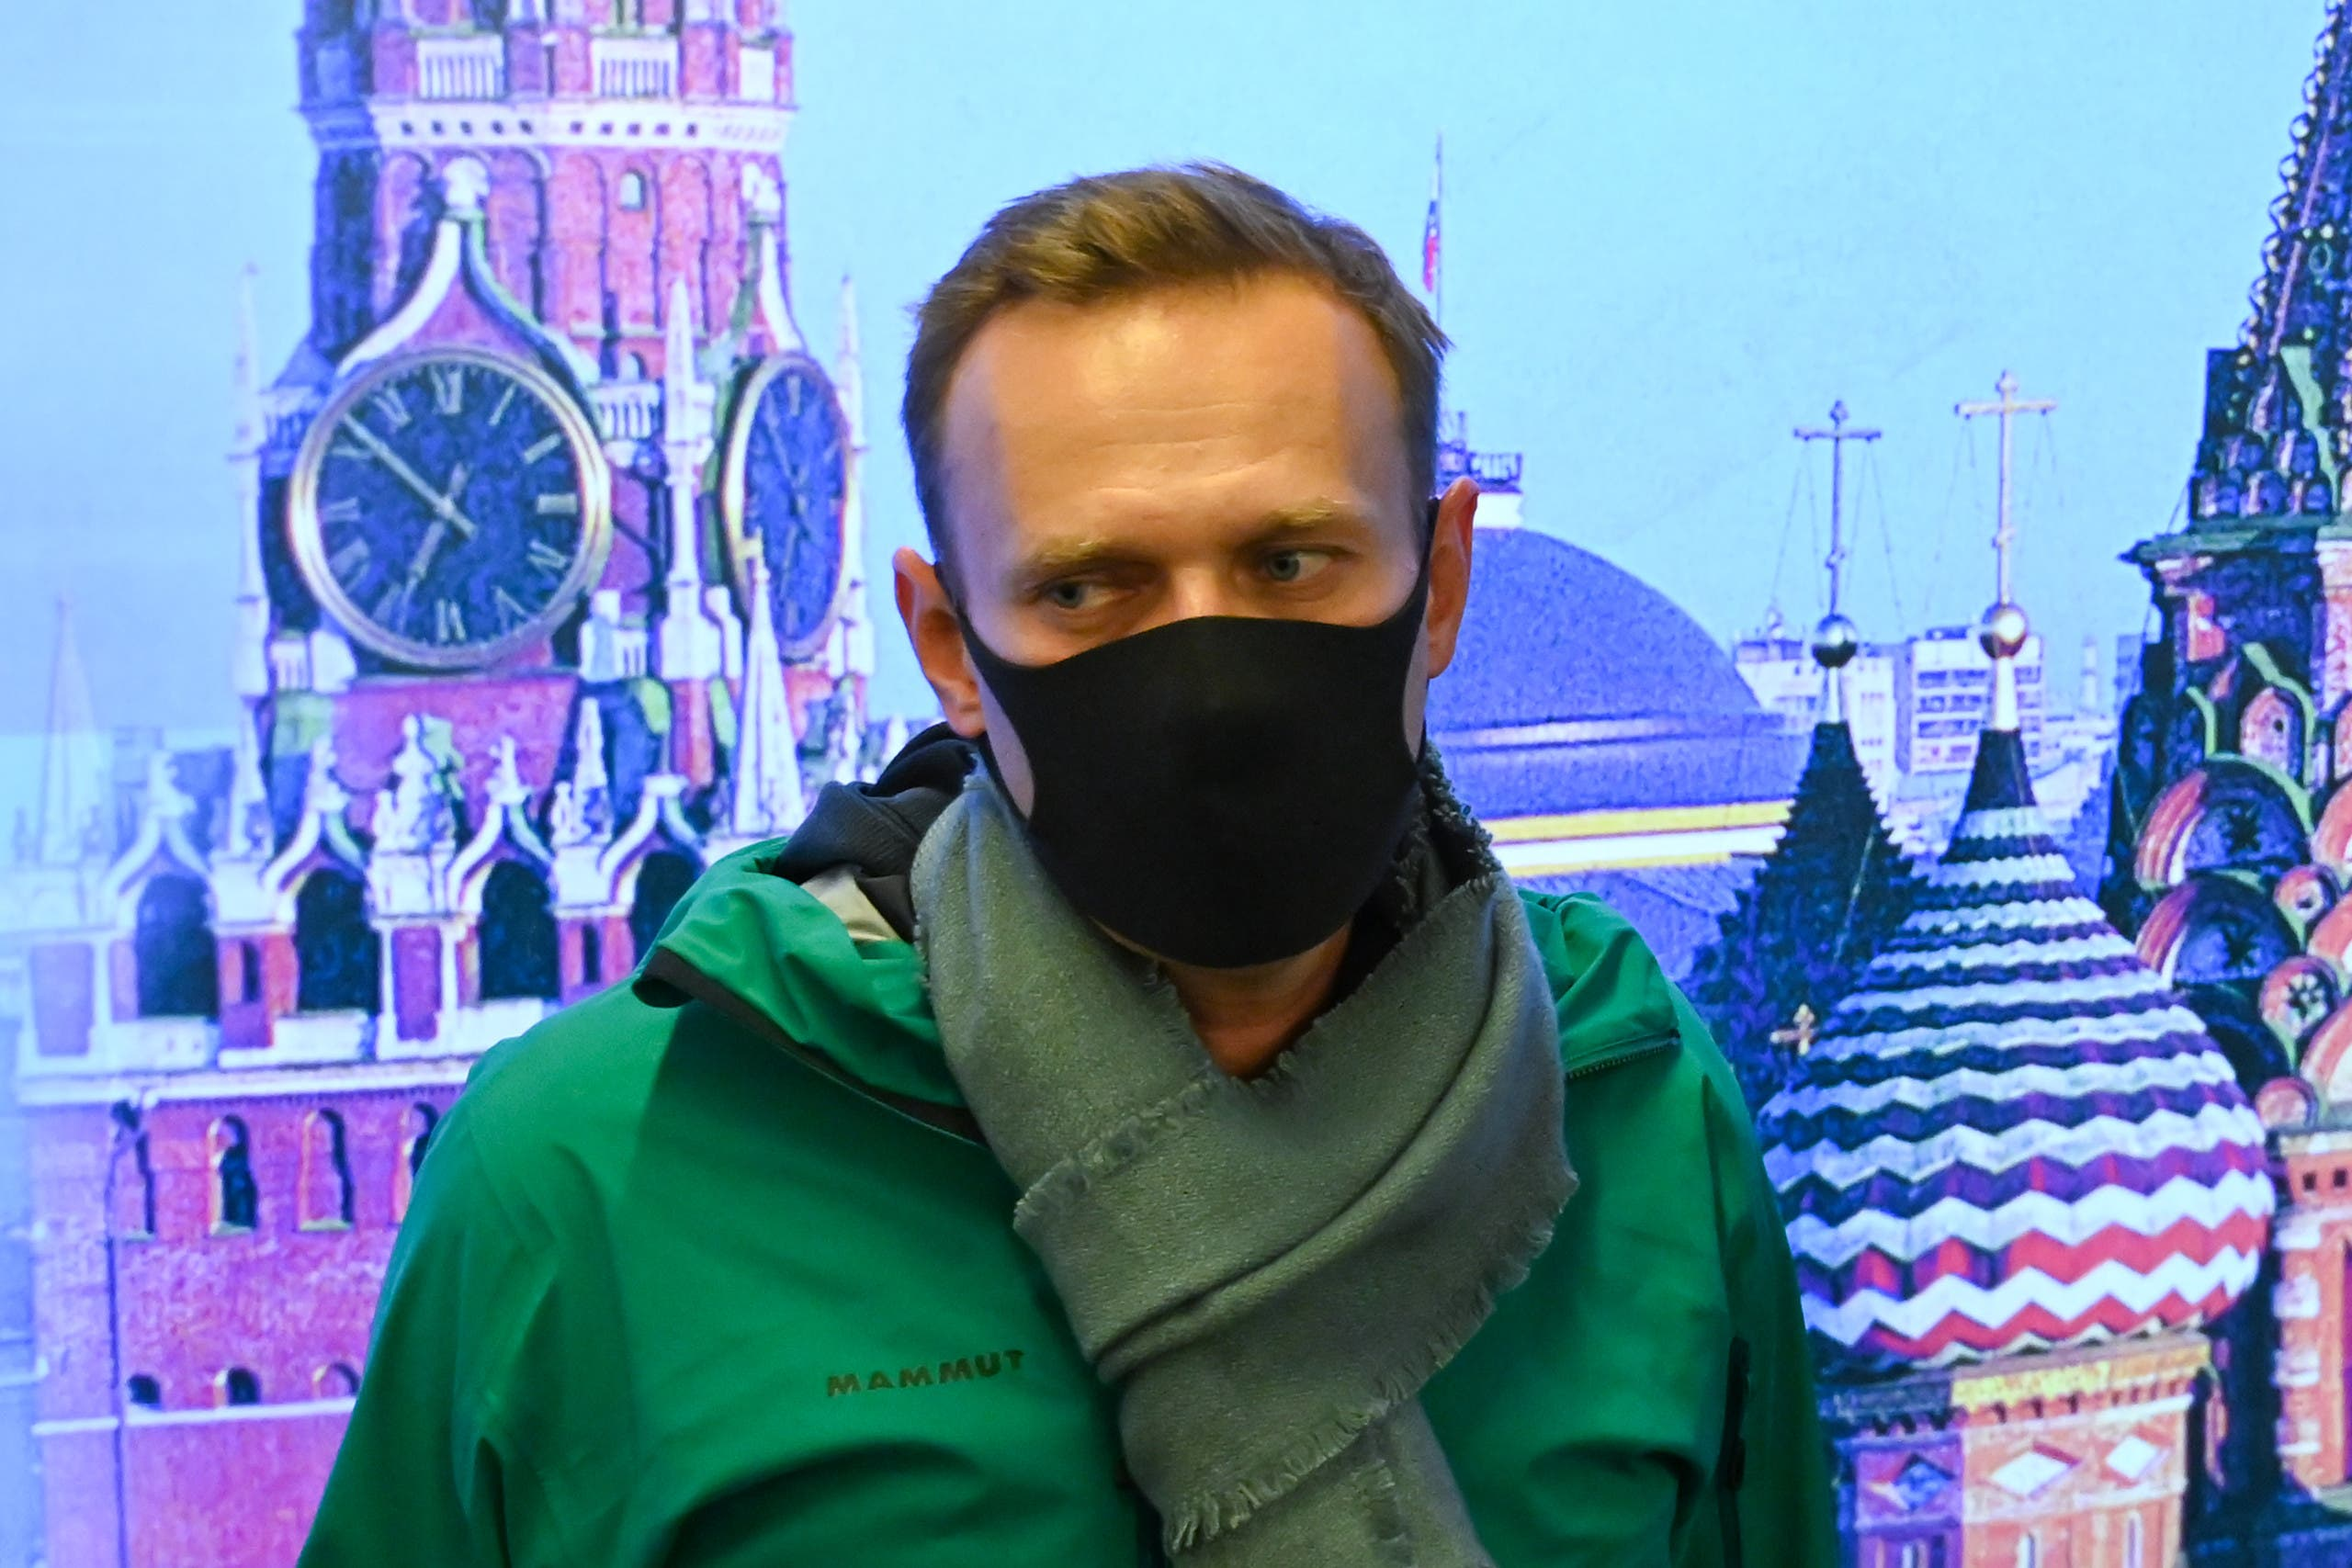 Russian opposition leader Alexei Navalny is seen at Moscow's Sheremetyevo airport upon the arrival from Berlin on January 17, 2021. (AFP)